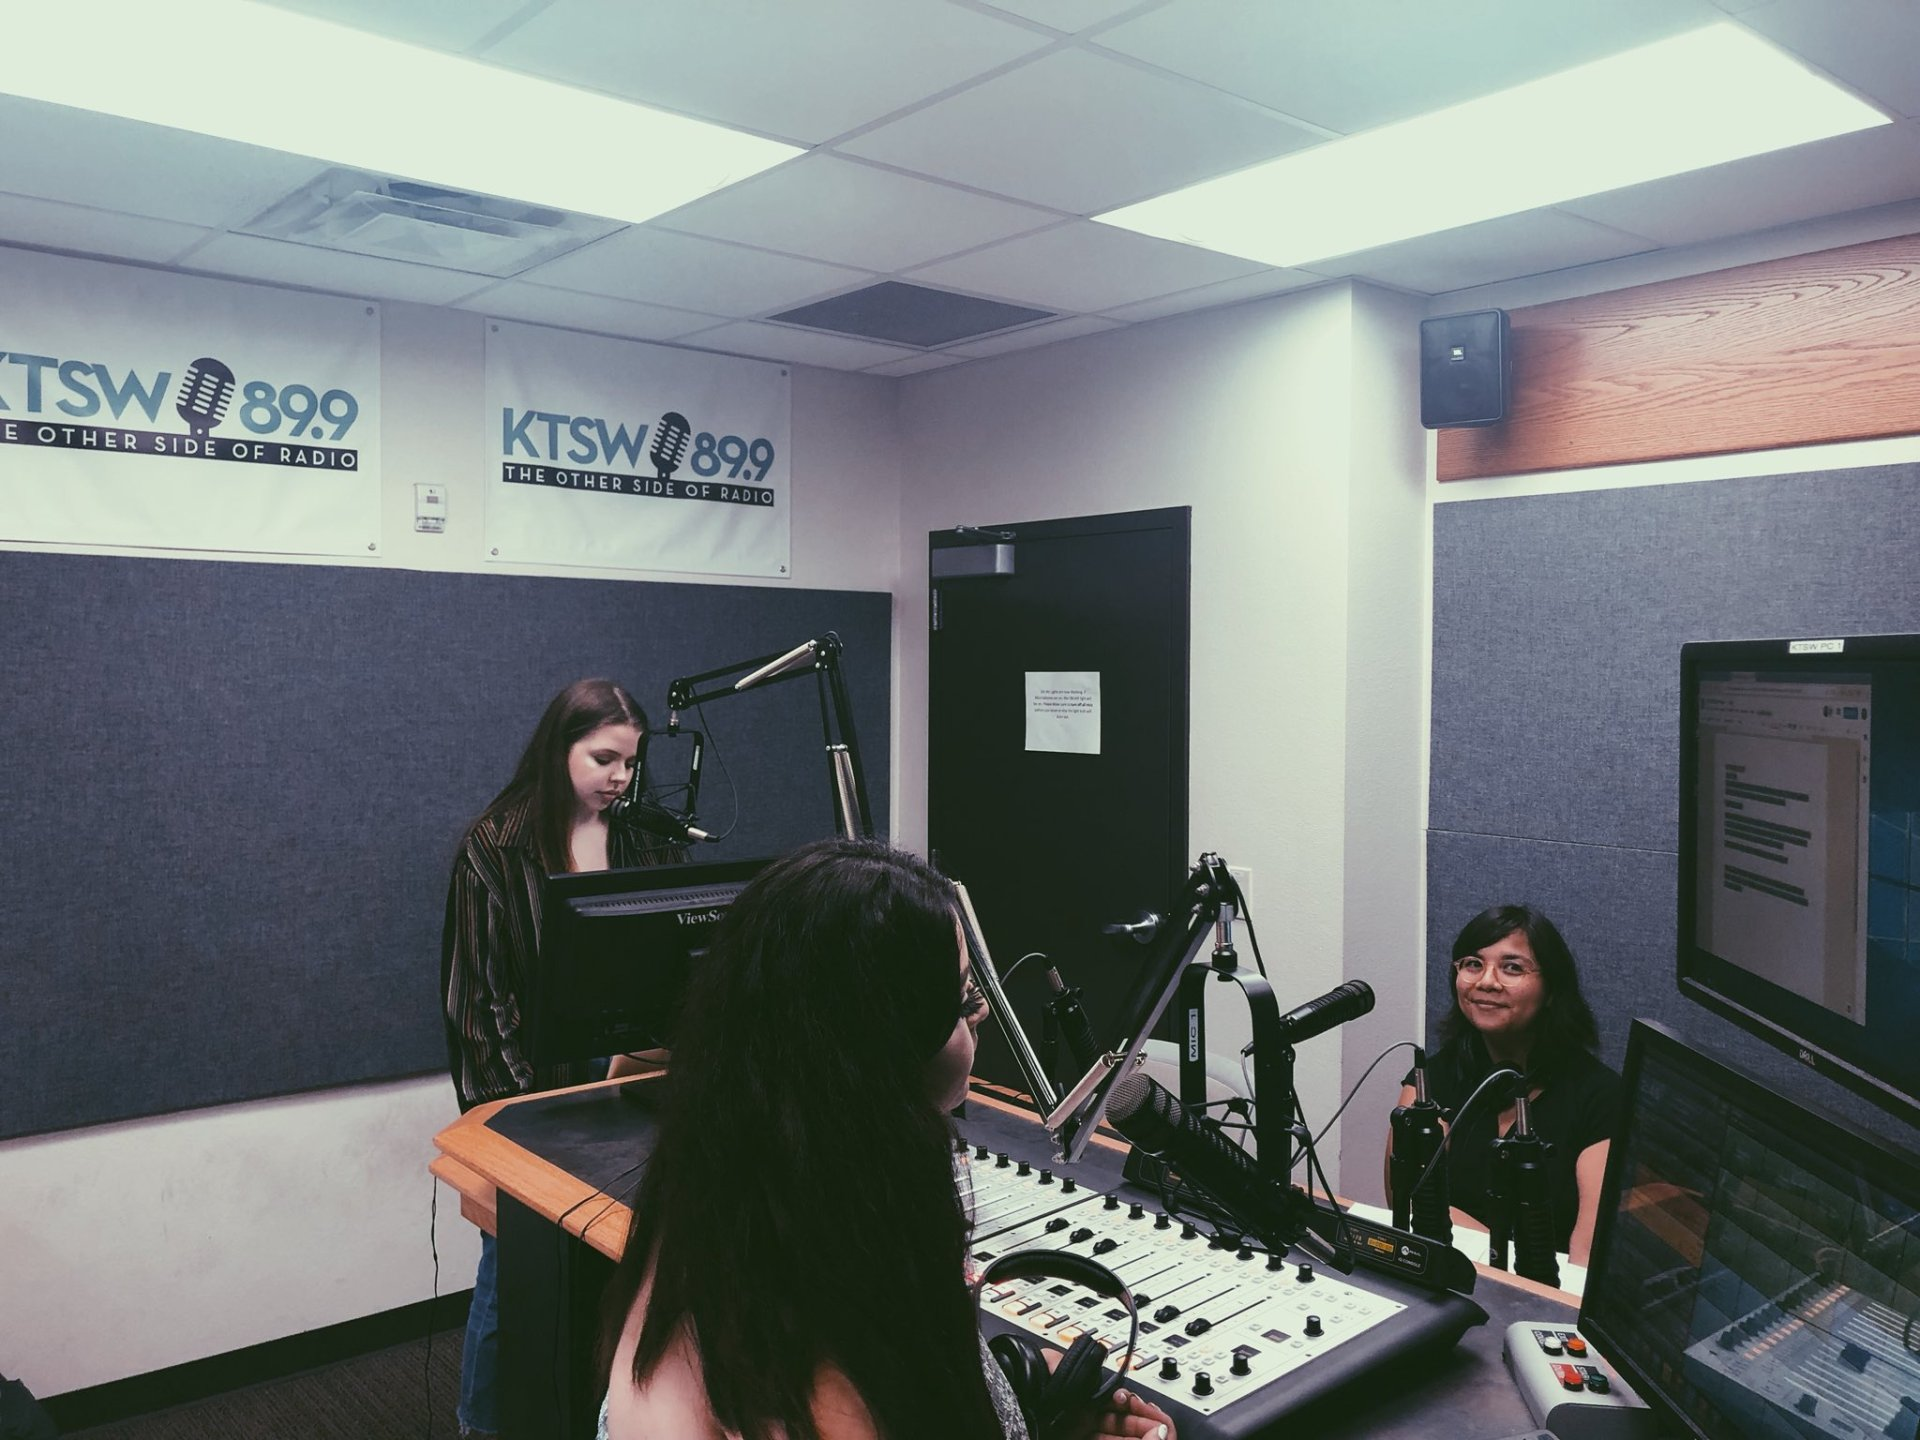 Three young women in the KTSW studio. One is smiling.